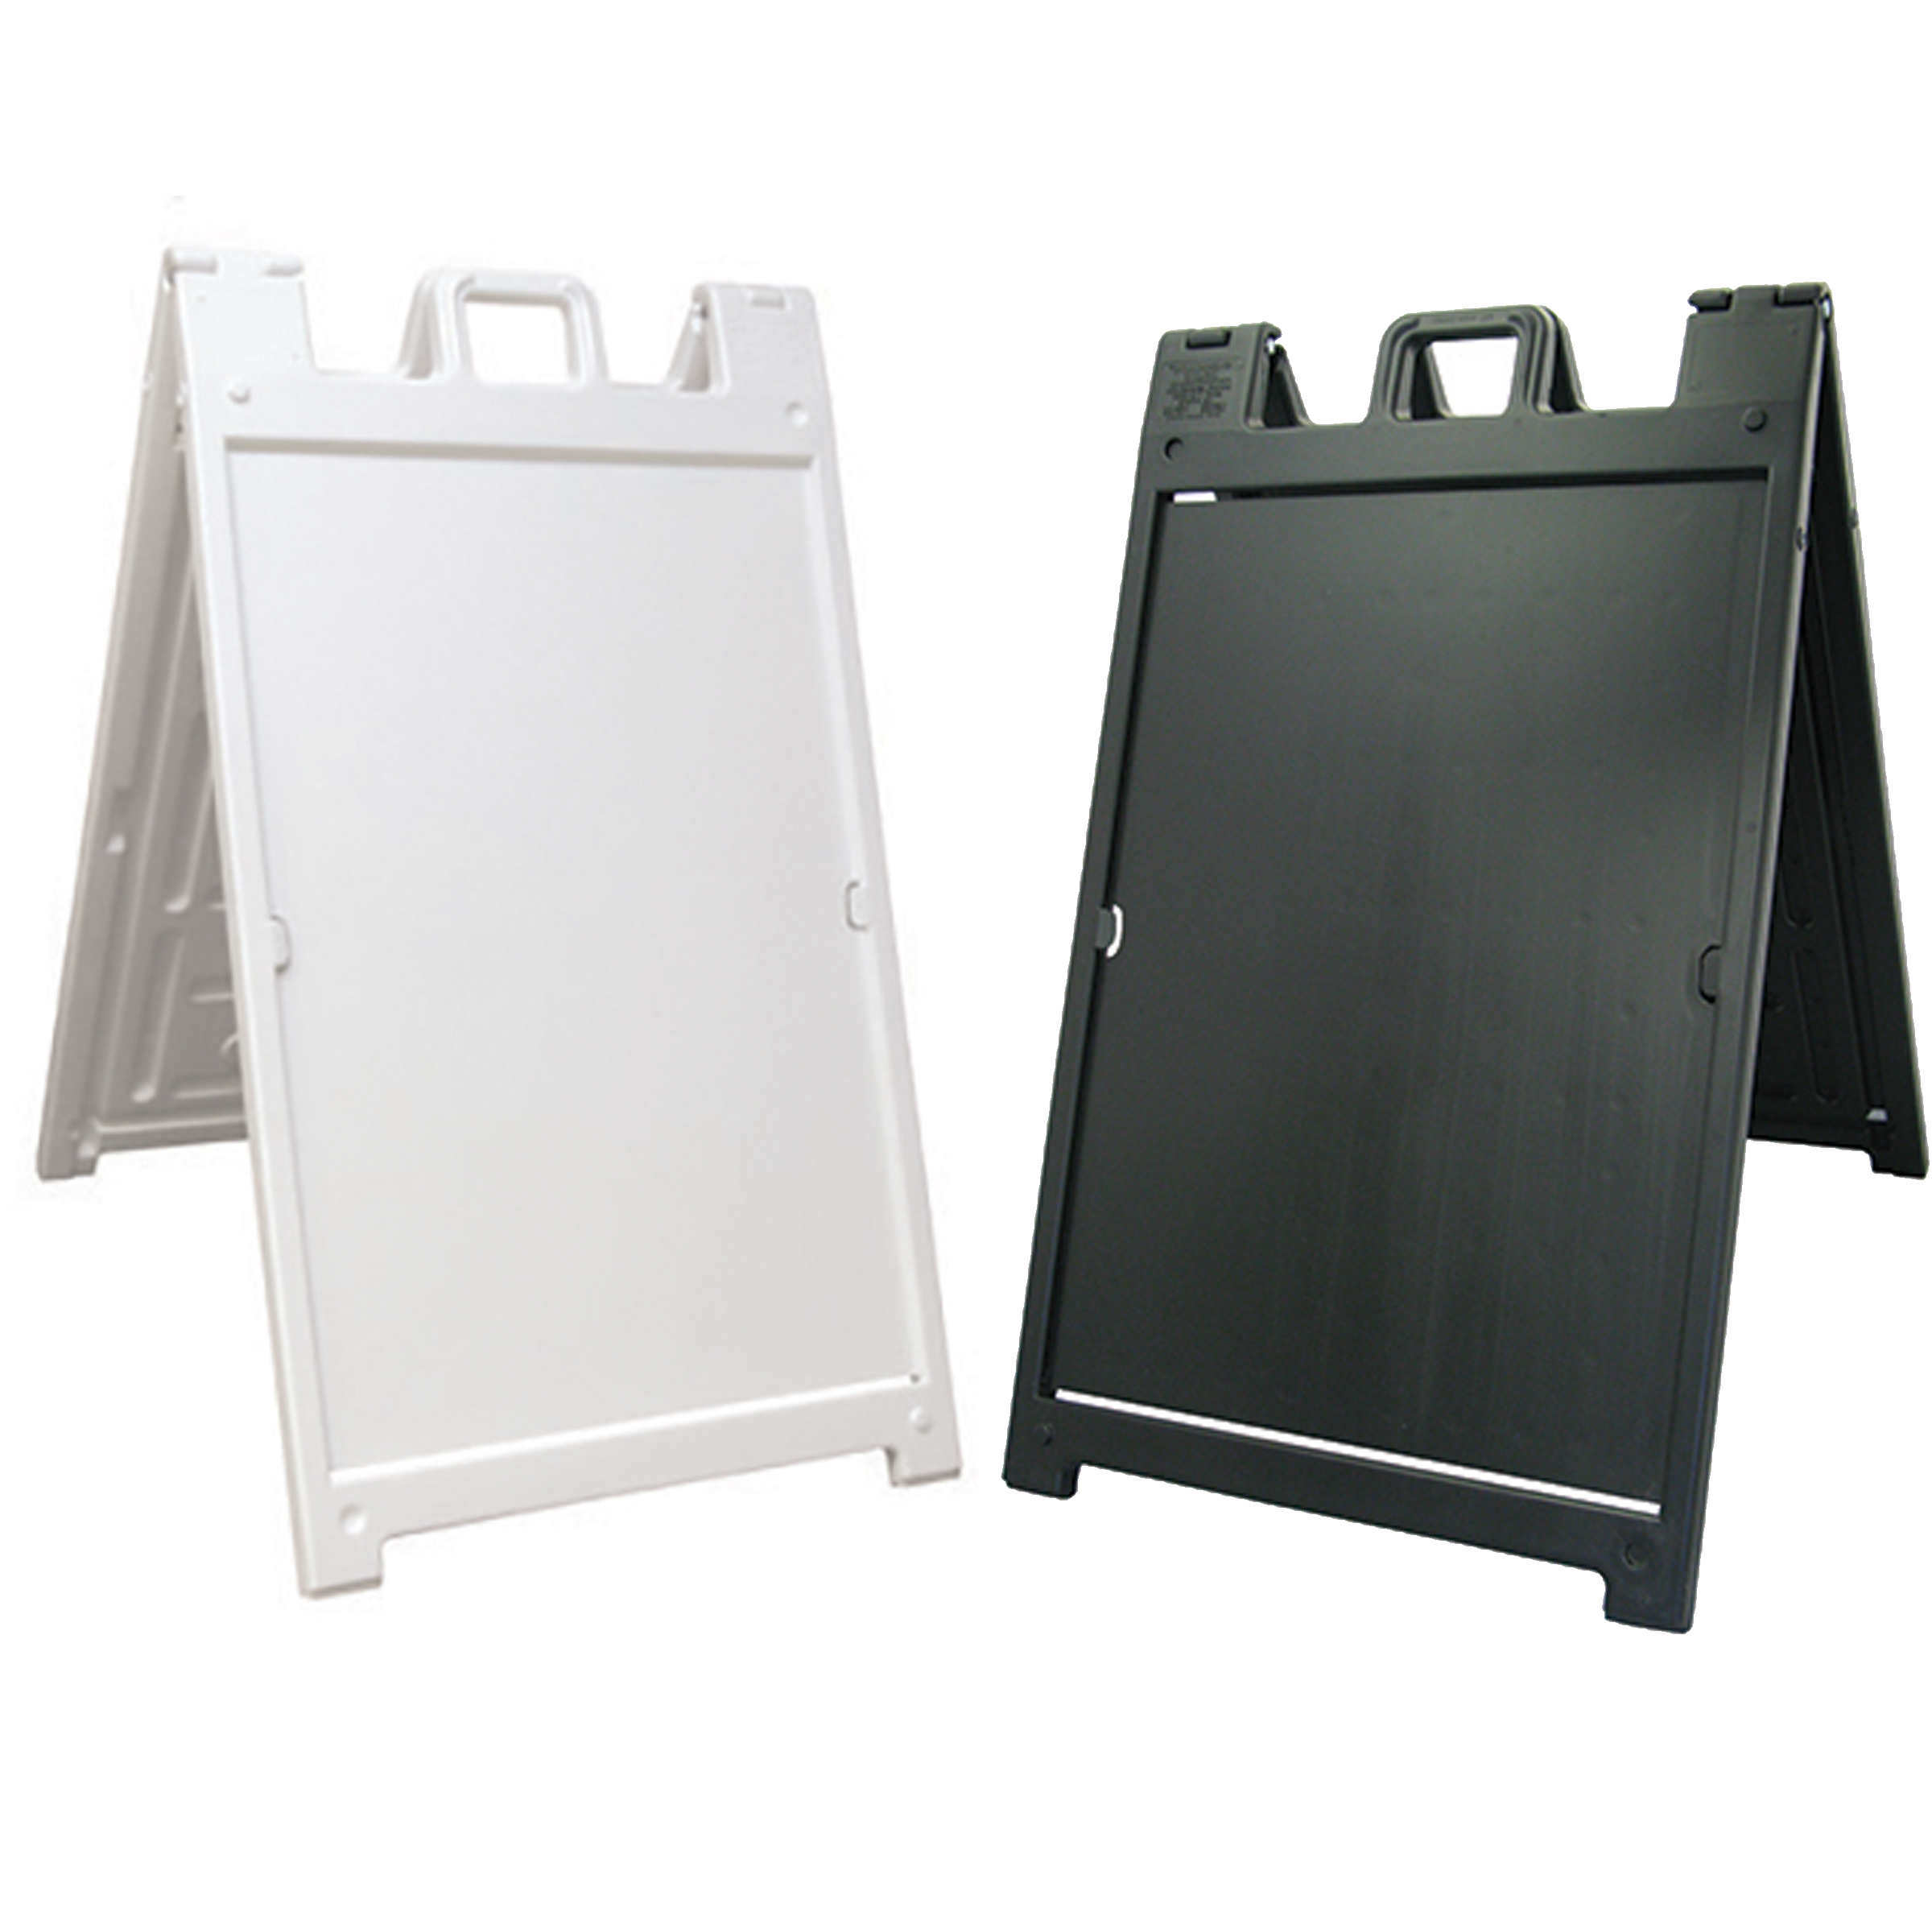 Signicade® Deluxe 24″ x 36″ WHITE or BLACK – Frame Only (SO ...